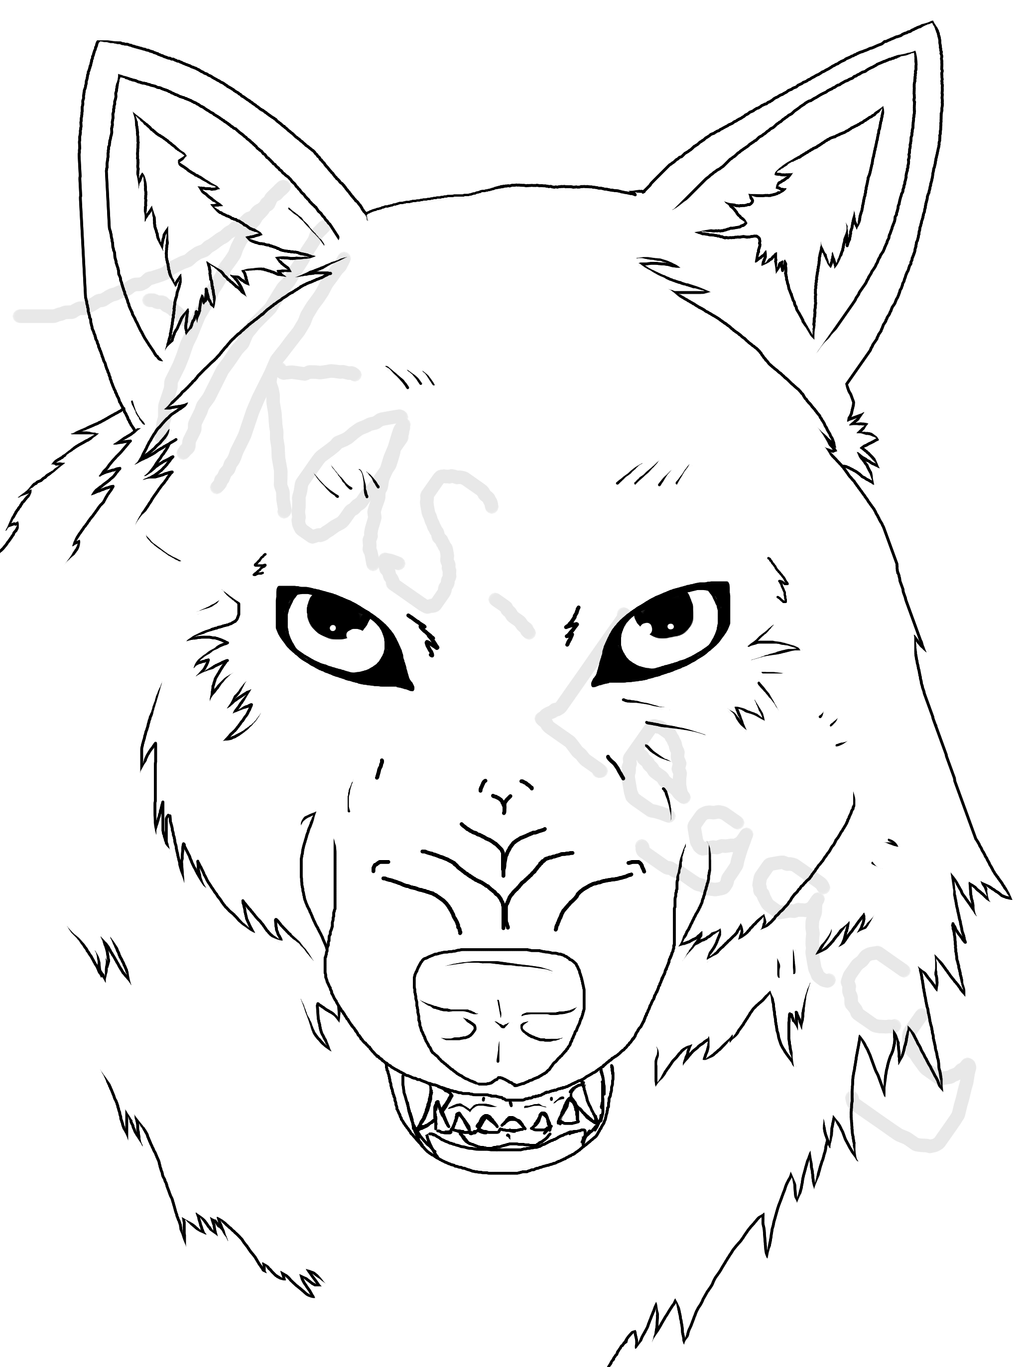 Snarling Wolf Wip By Alkaslegacy How To Draw